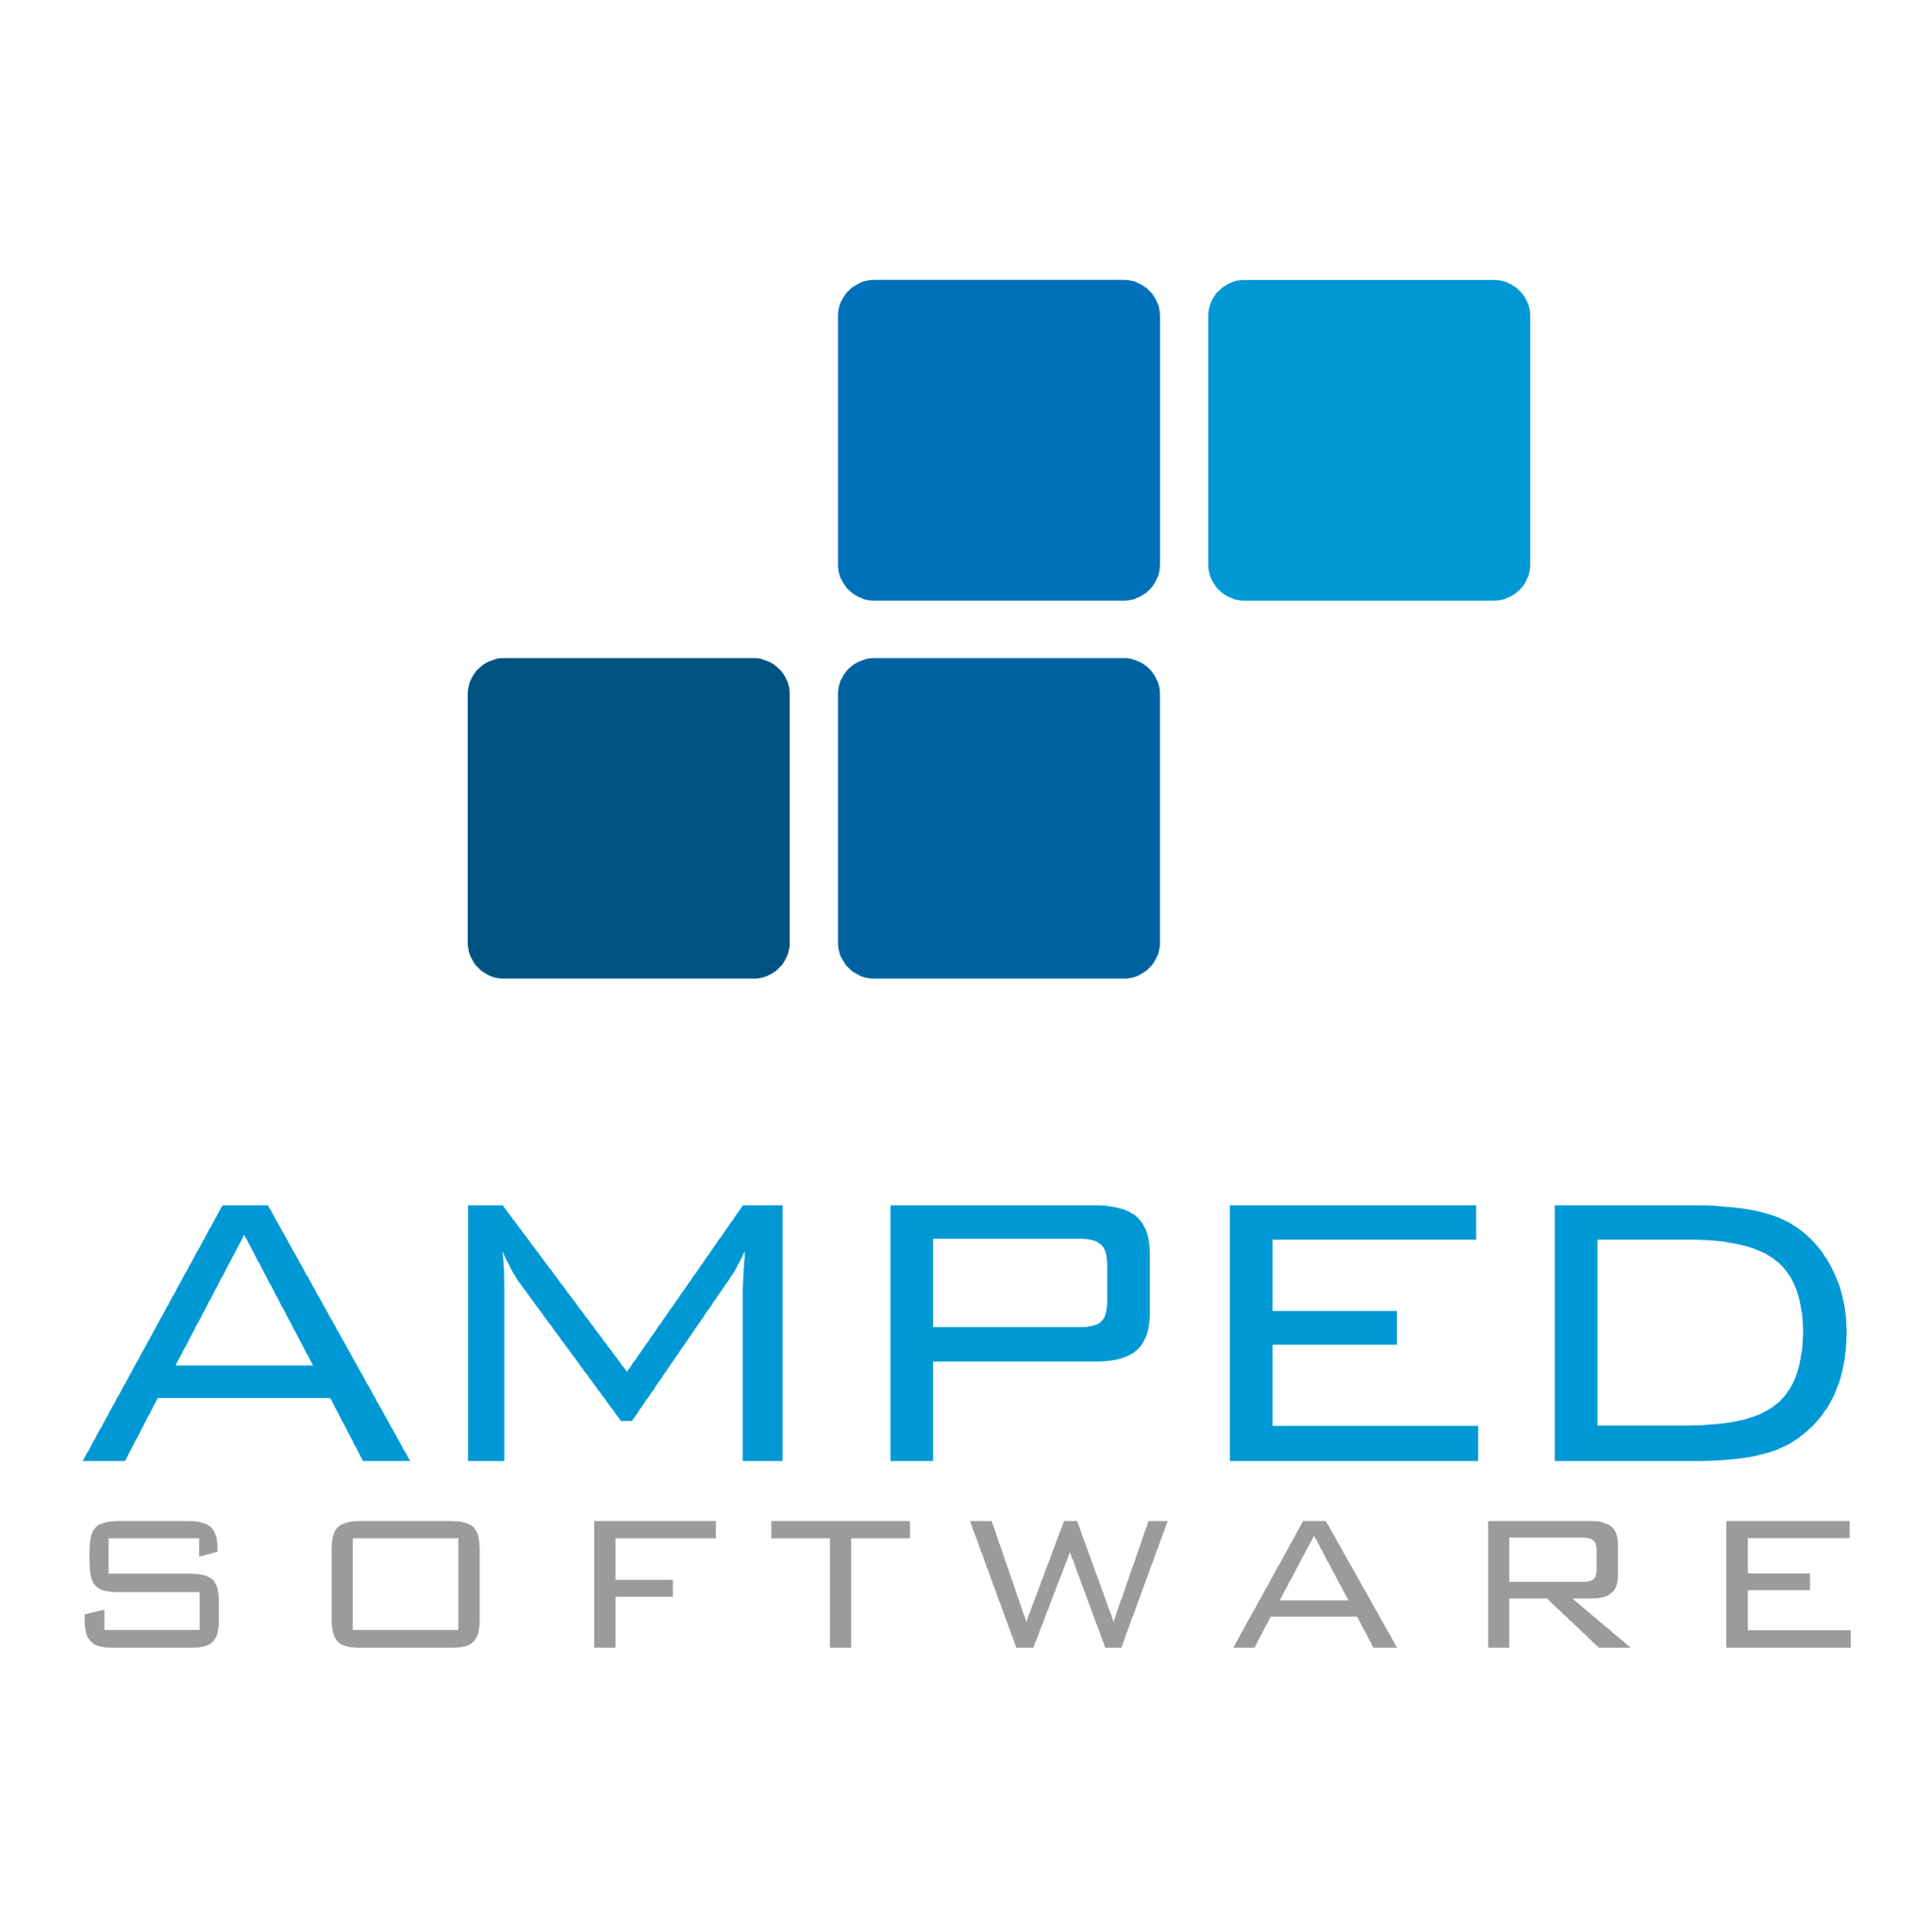 Amped Software